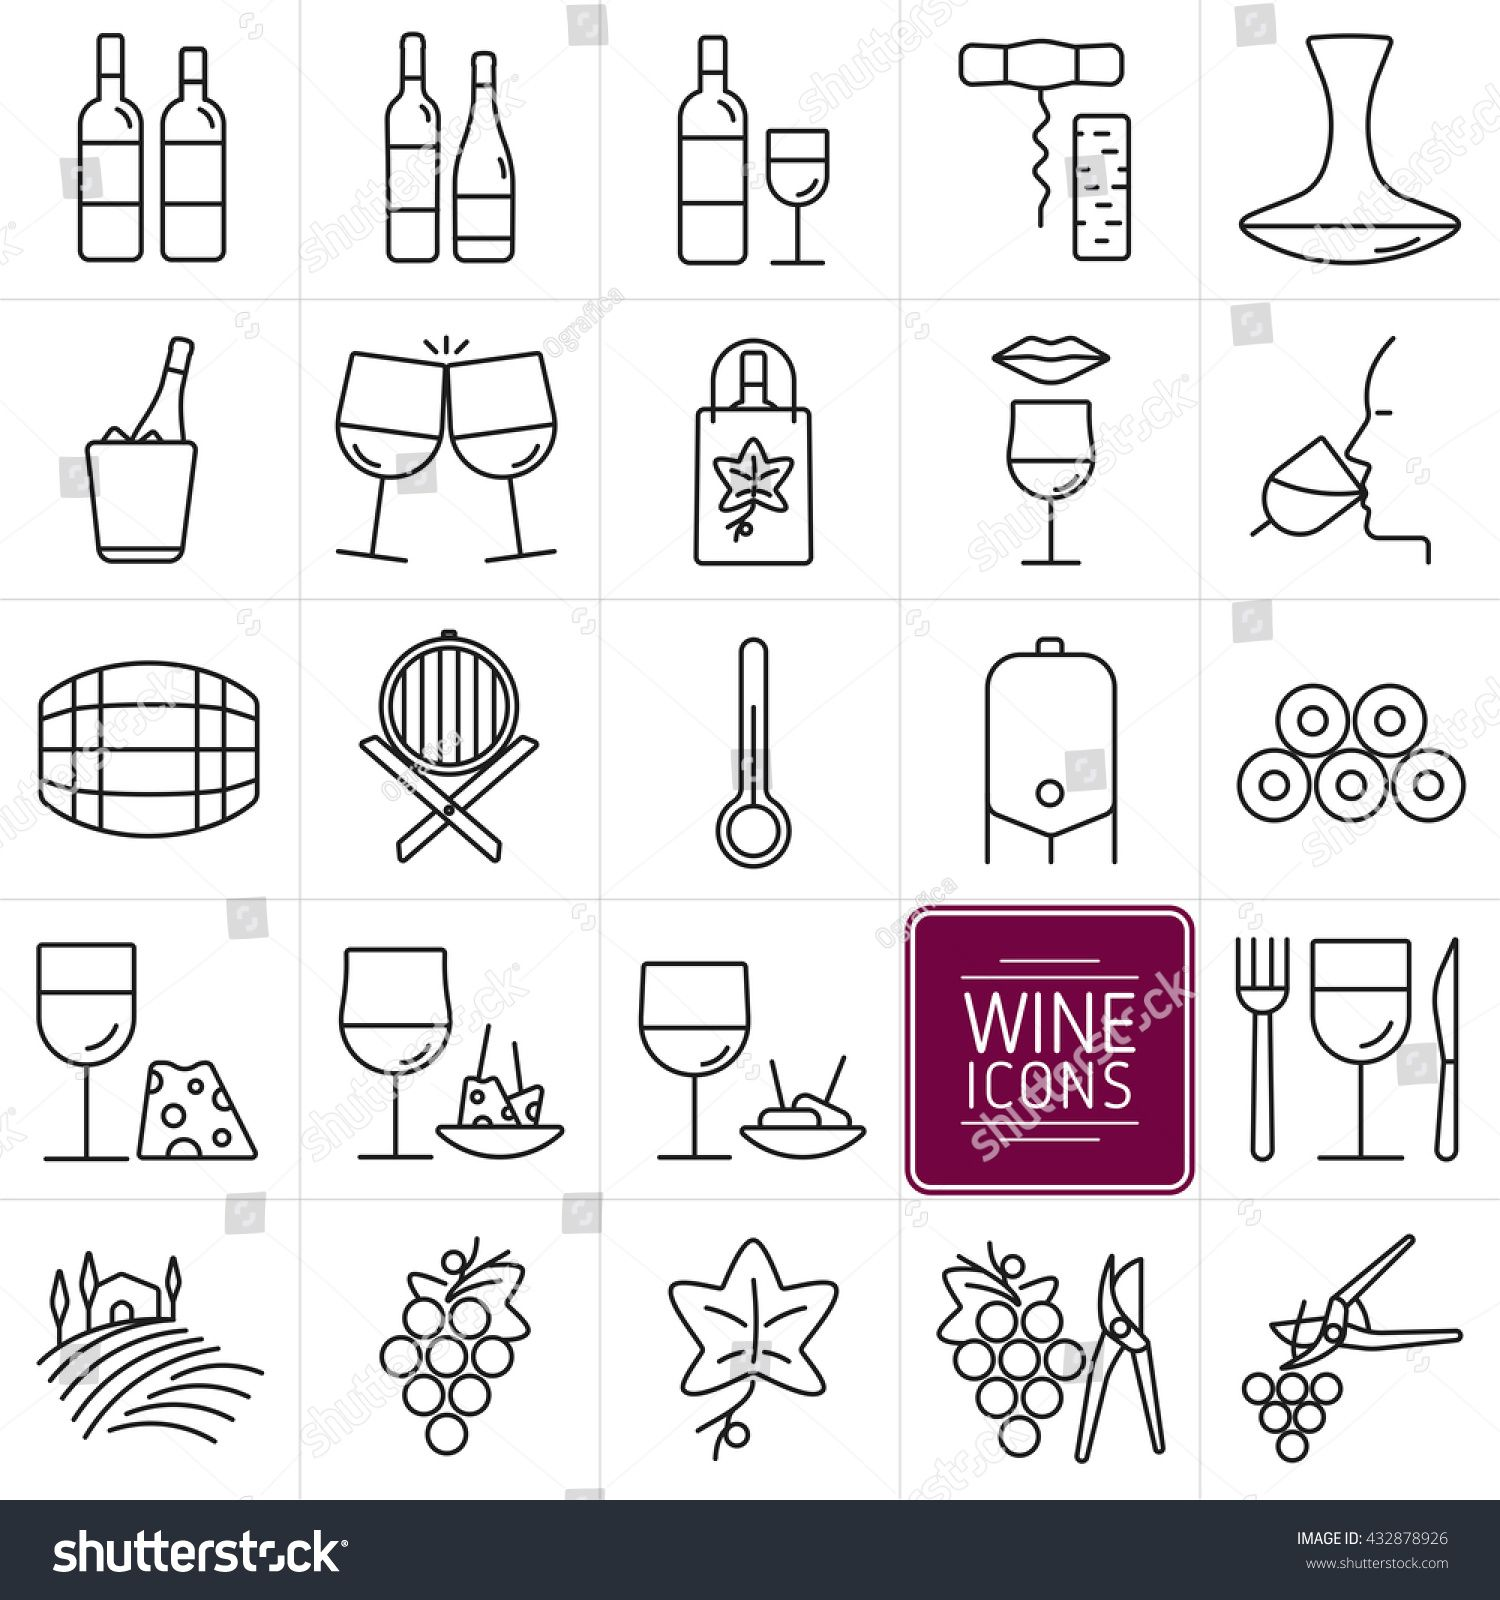 Set Of Icons Of Wine Icons Bottles And Wine Glasses Wine Shop Tasting Food Cellar And Vineyards Vector Illustration Wine Icon Wine Logo Wine Tasting Card